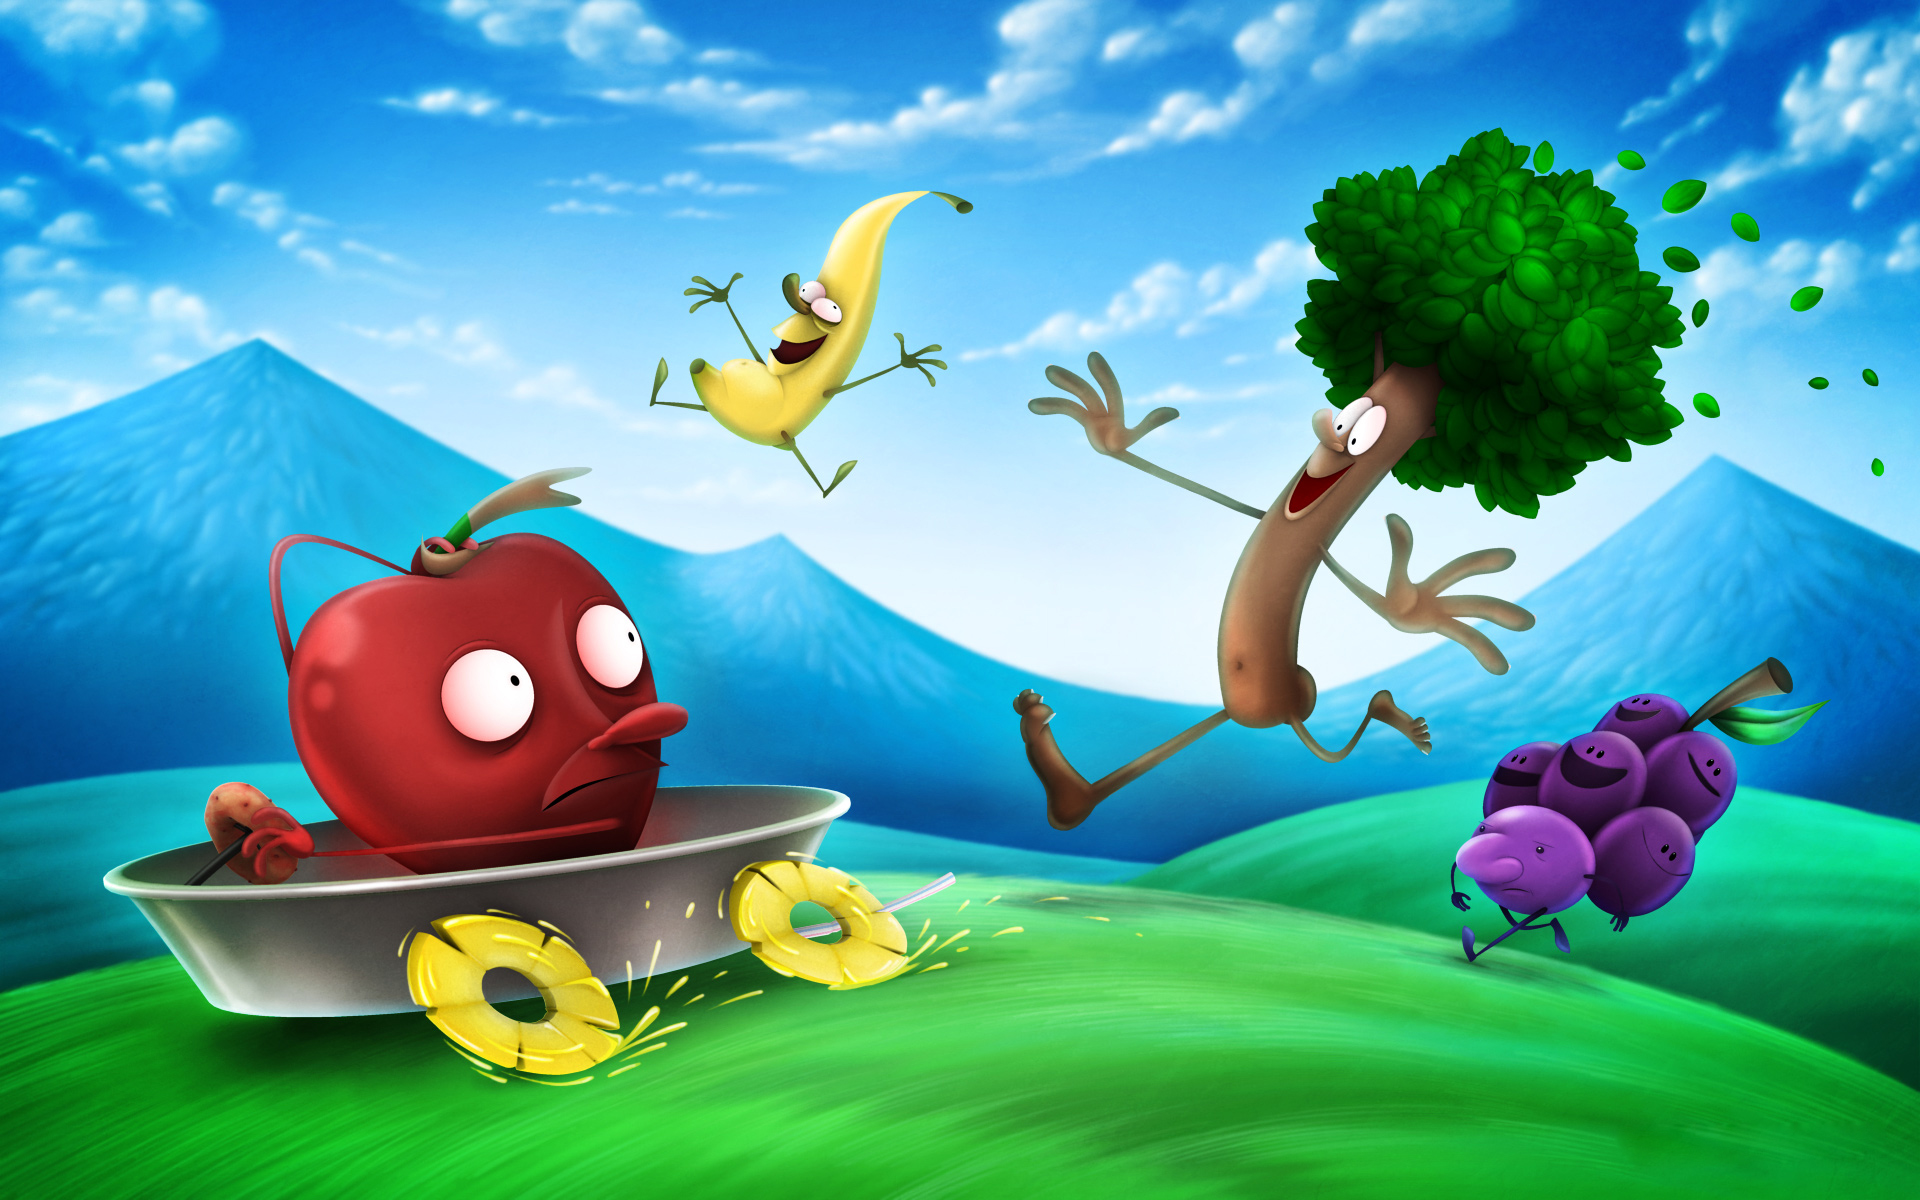 Animation Wallpaper Free Download For Desktop